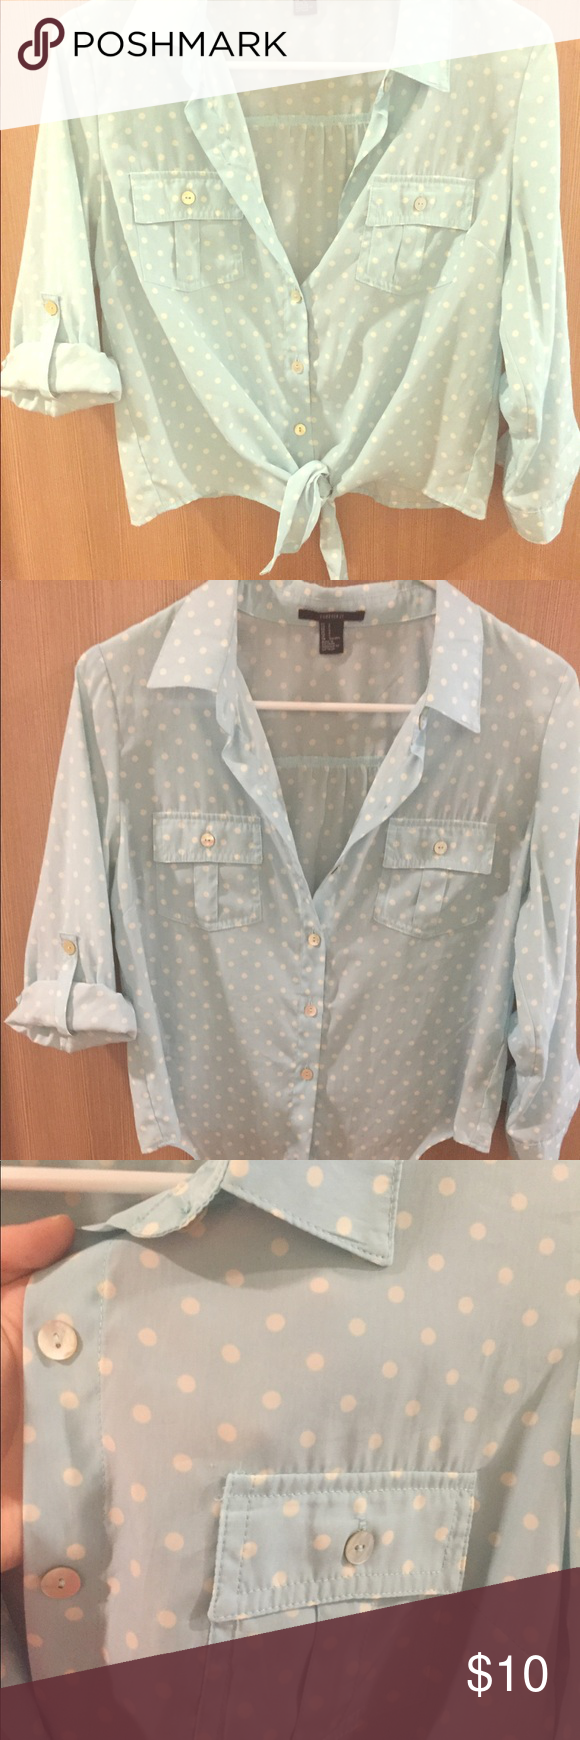 Forever 21 - CUTE, cropped, light-weight top! Super cute, cropped, quarter sleeve top. Used but in good condition! Light weight material good for sunny weather ☀️☀️ sleeves roll up and button (as shown in pictures). Light blue with polka dots. Forever 21 Tops Blouses